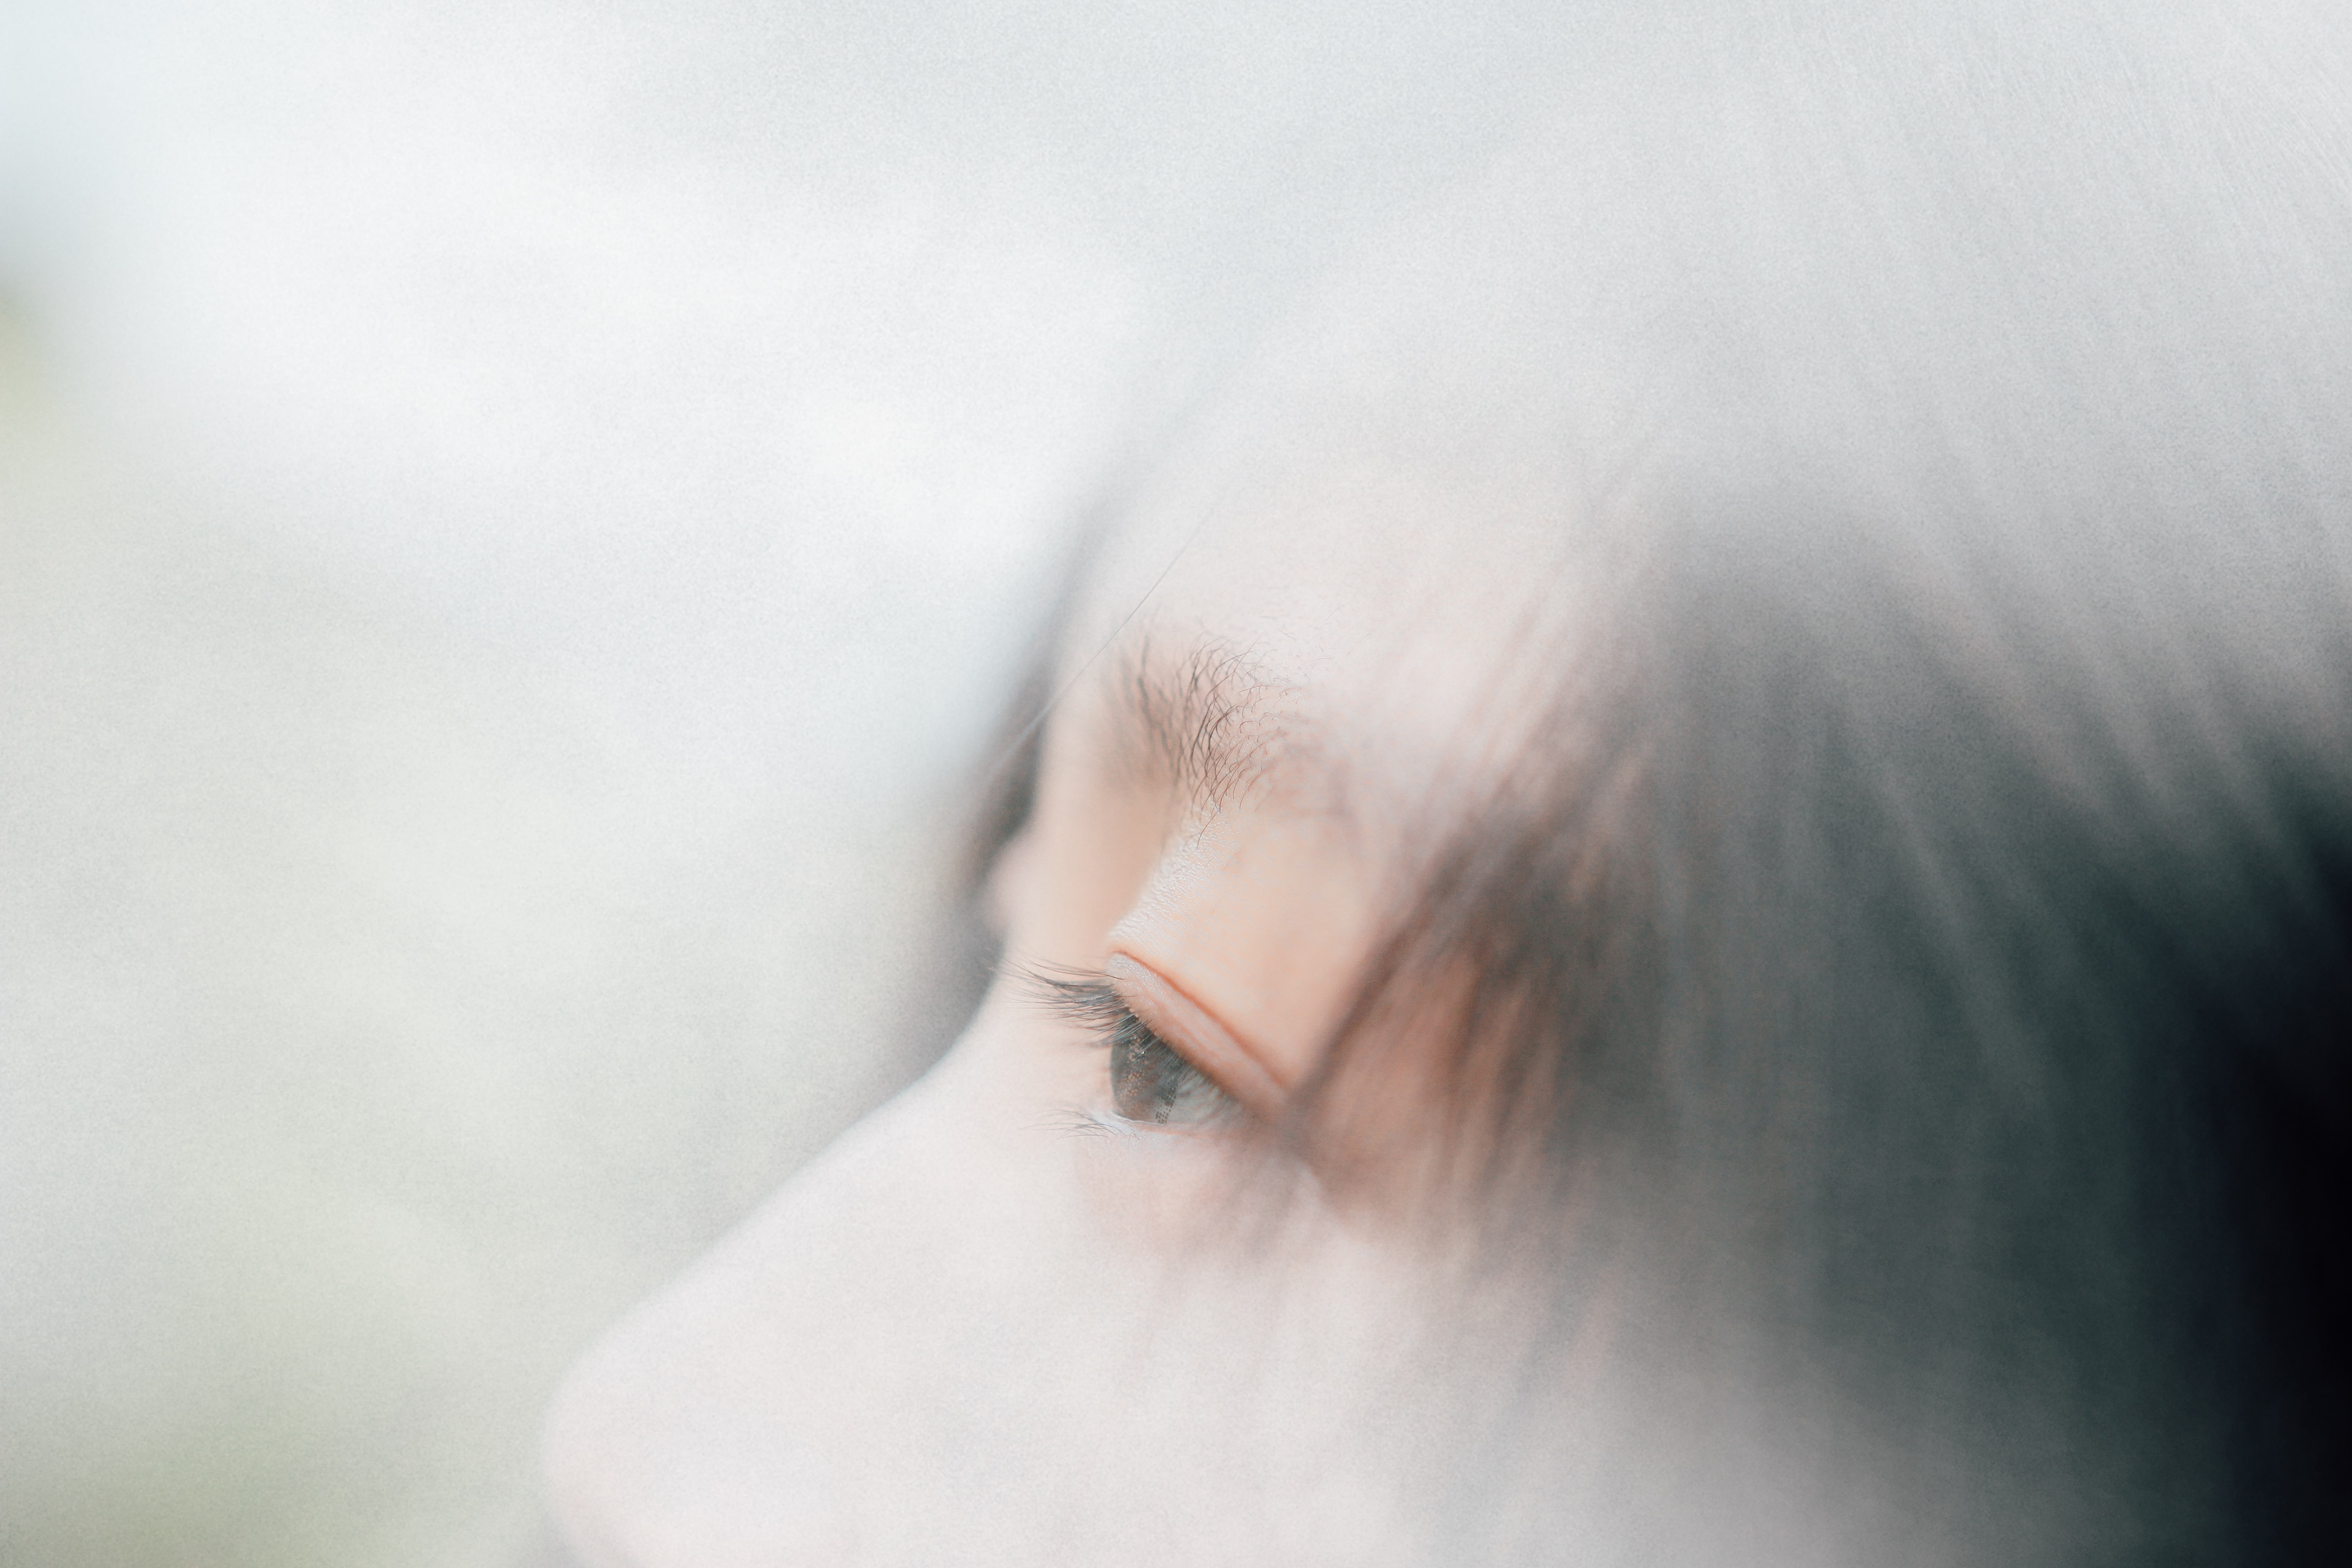 Part of a person's eyes, nose, and face covered in fog and smoke